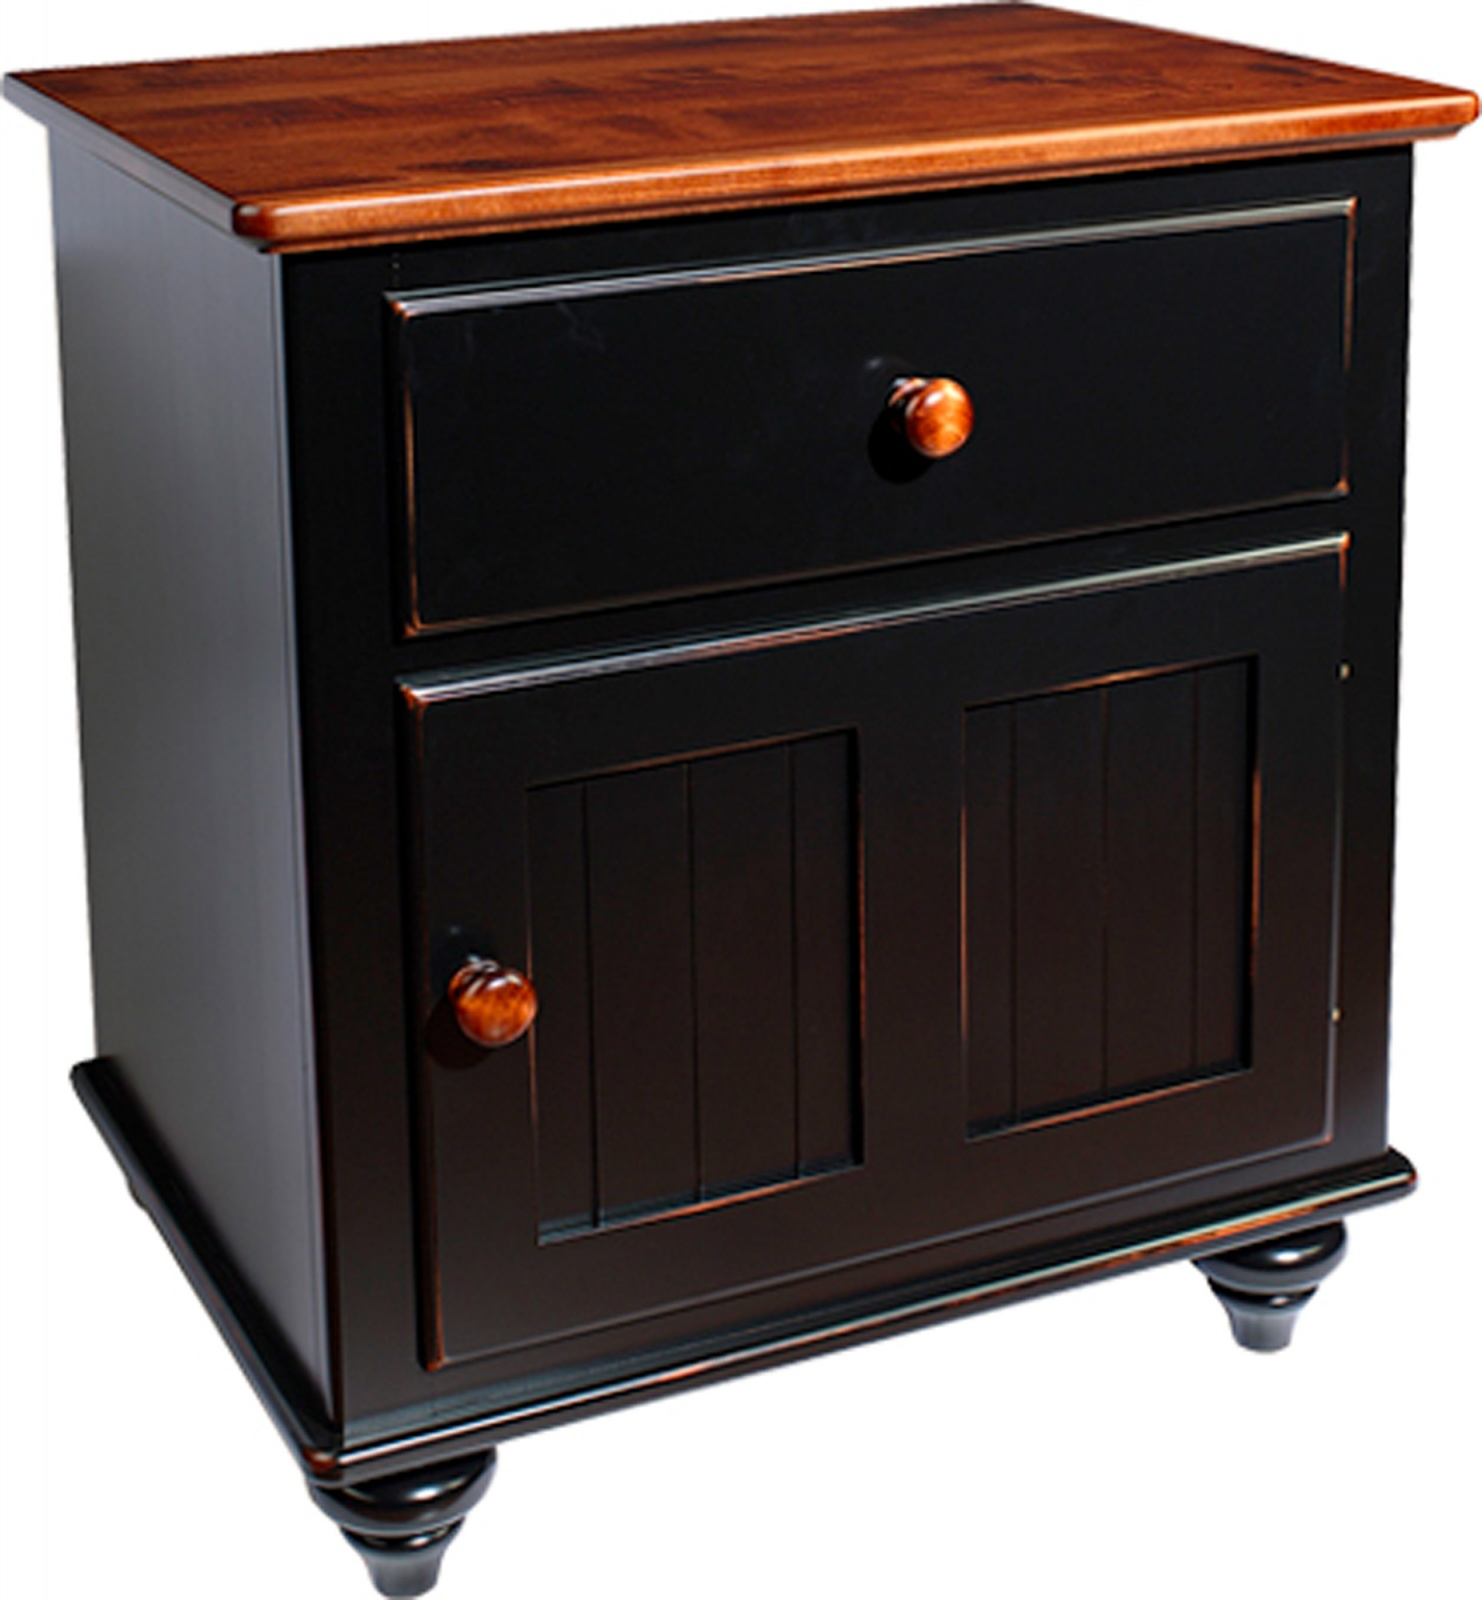 WB-1744 Door Nightstand.jpg